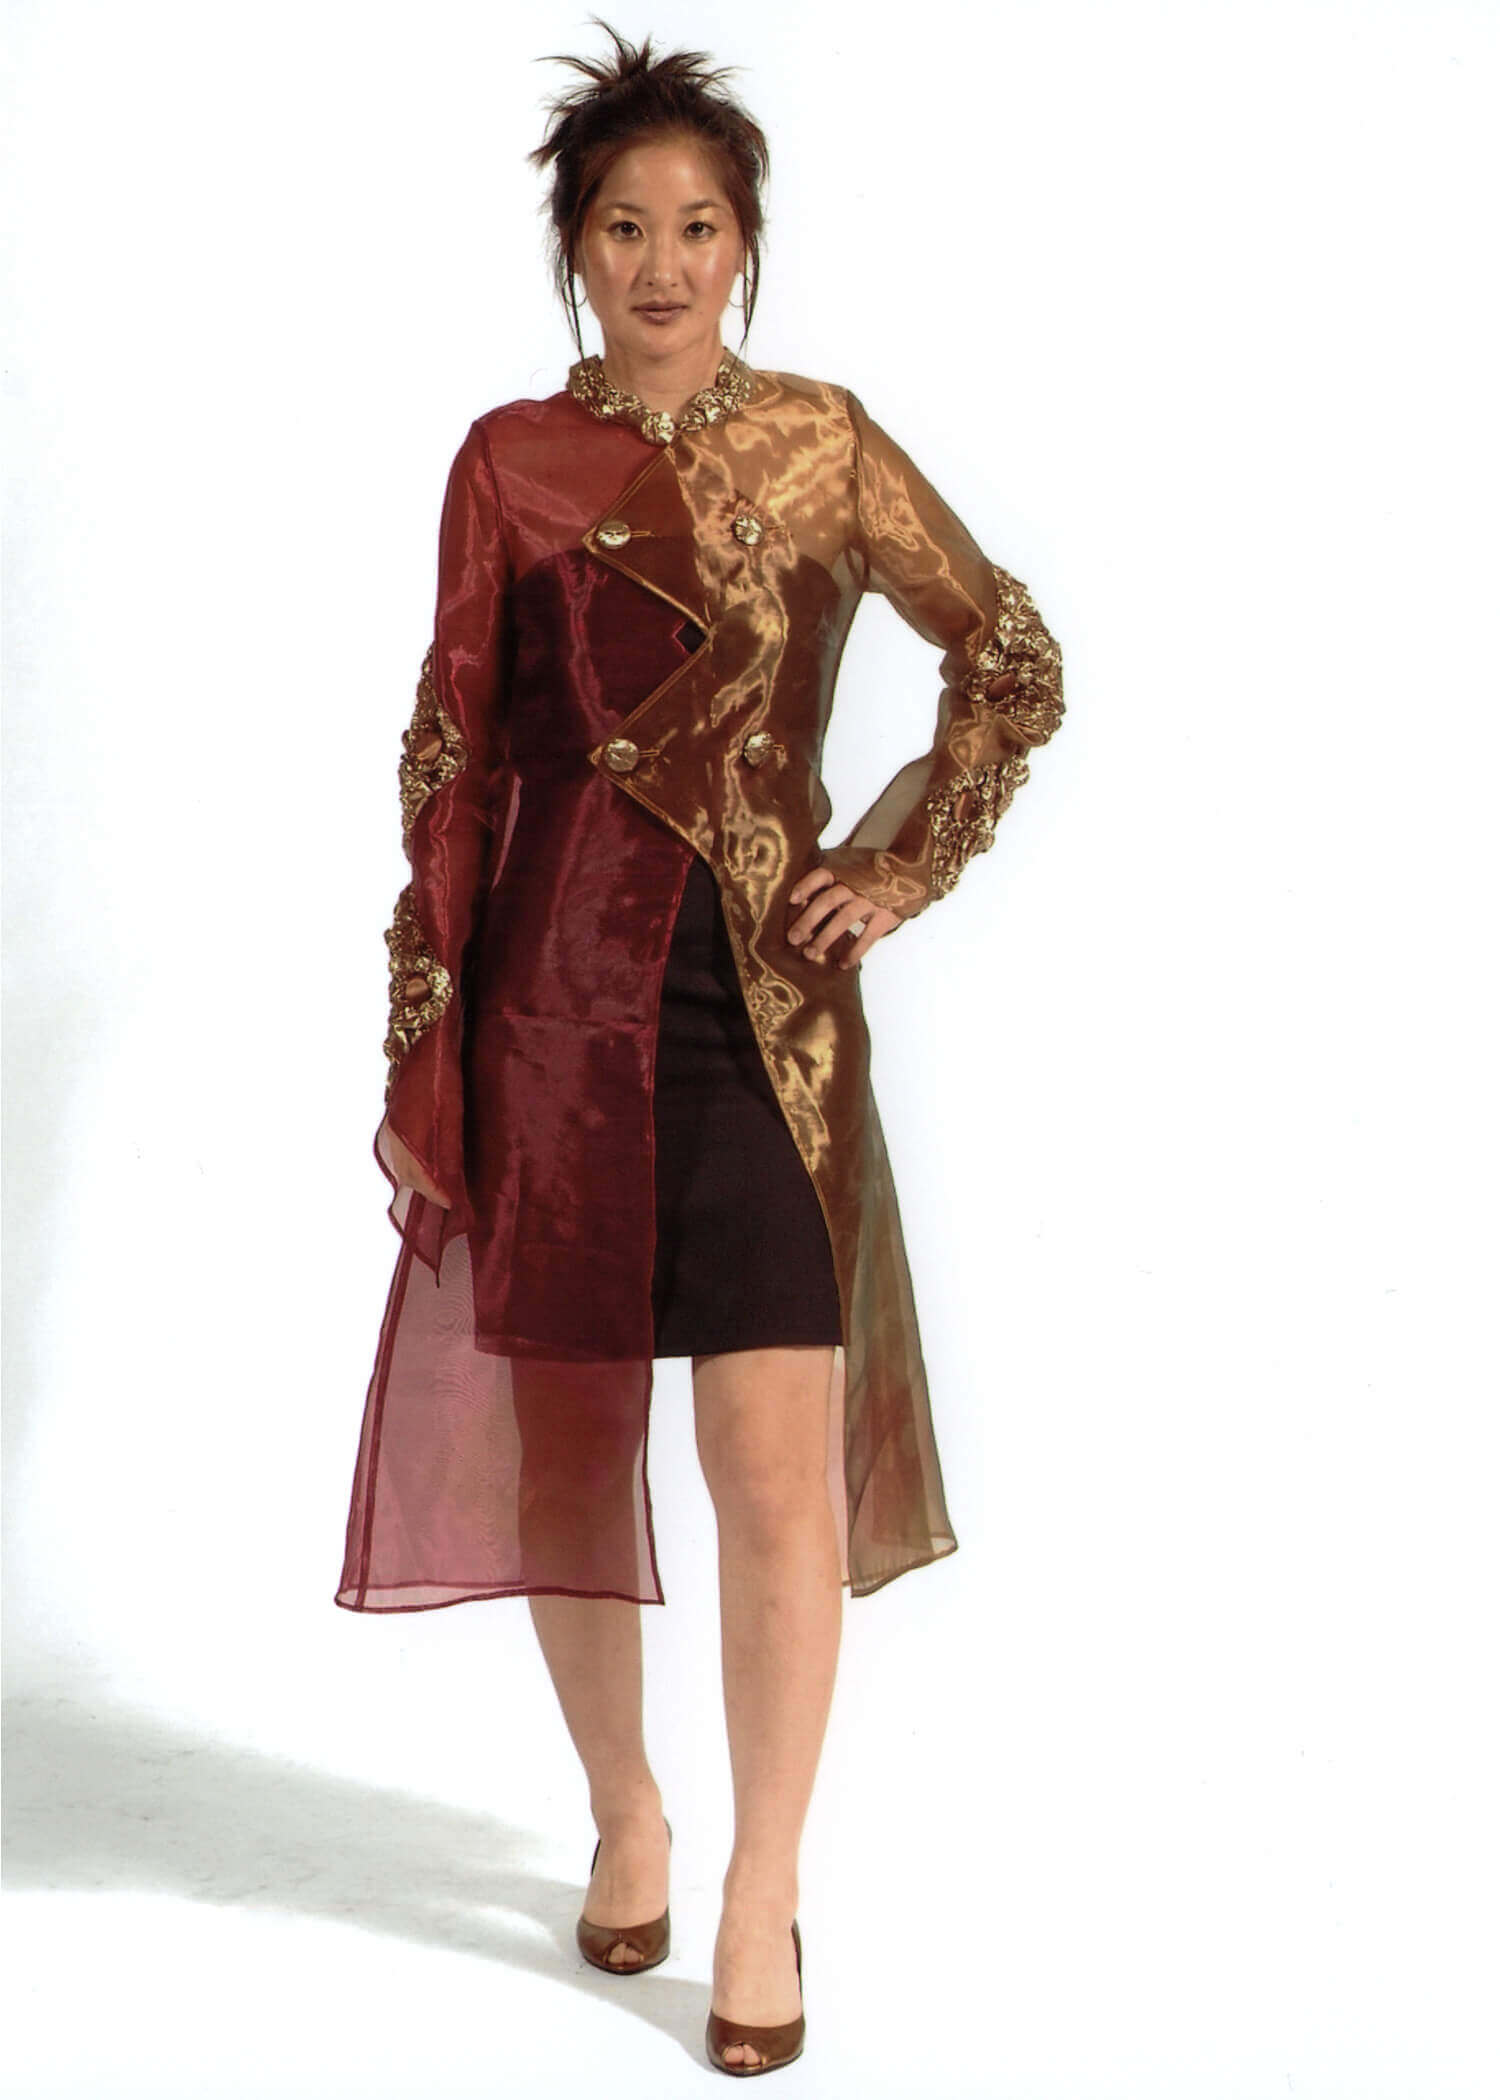 Wearable Art by Rebecca Wendlandt: Diamond Coat